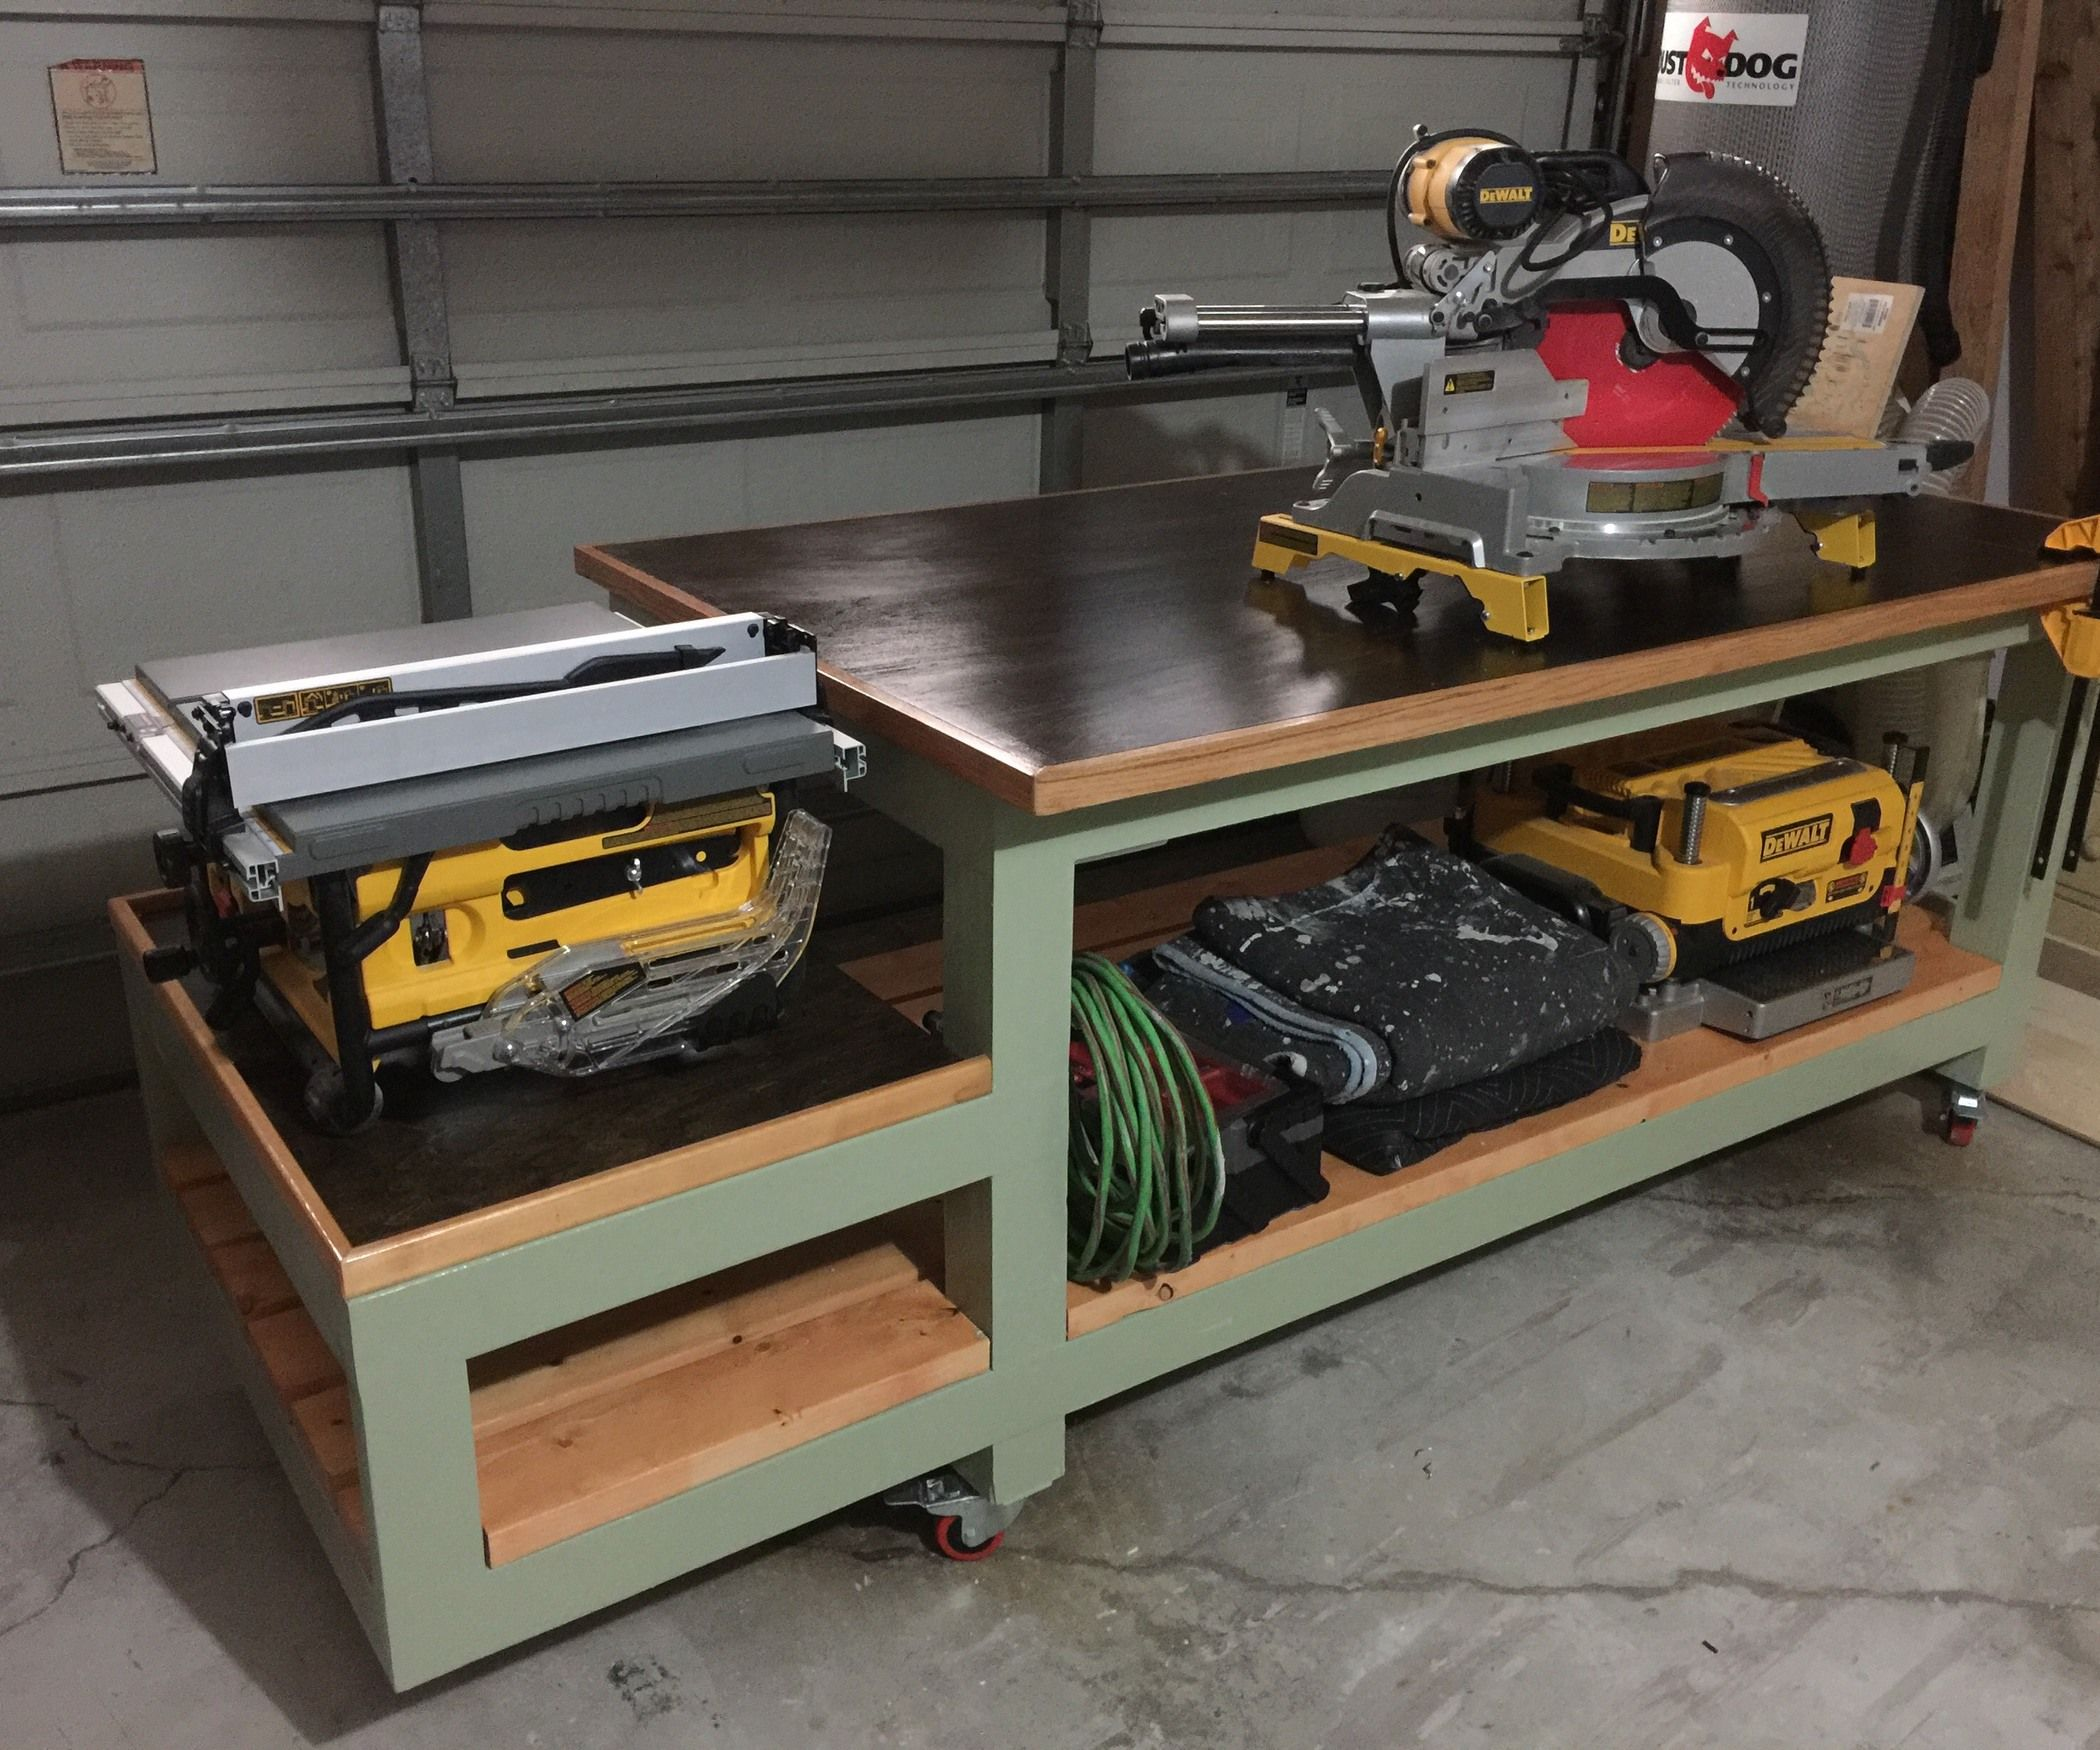 Garage Workbench And Storage All In One Work Bench Tool Storage Storage And Bench